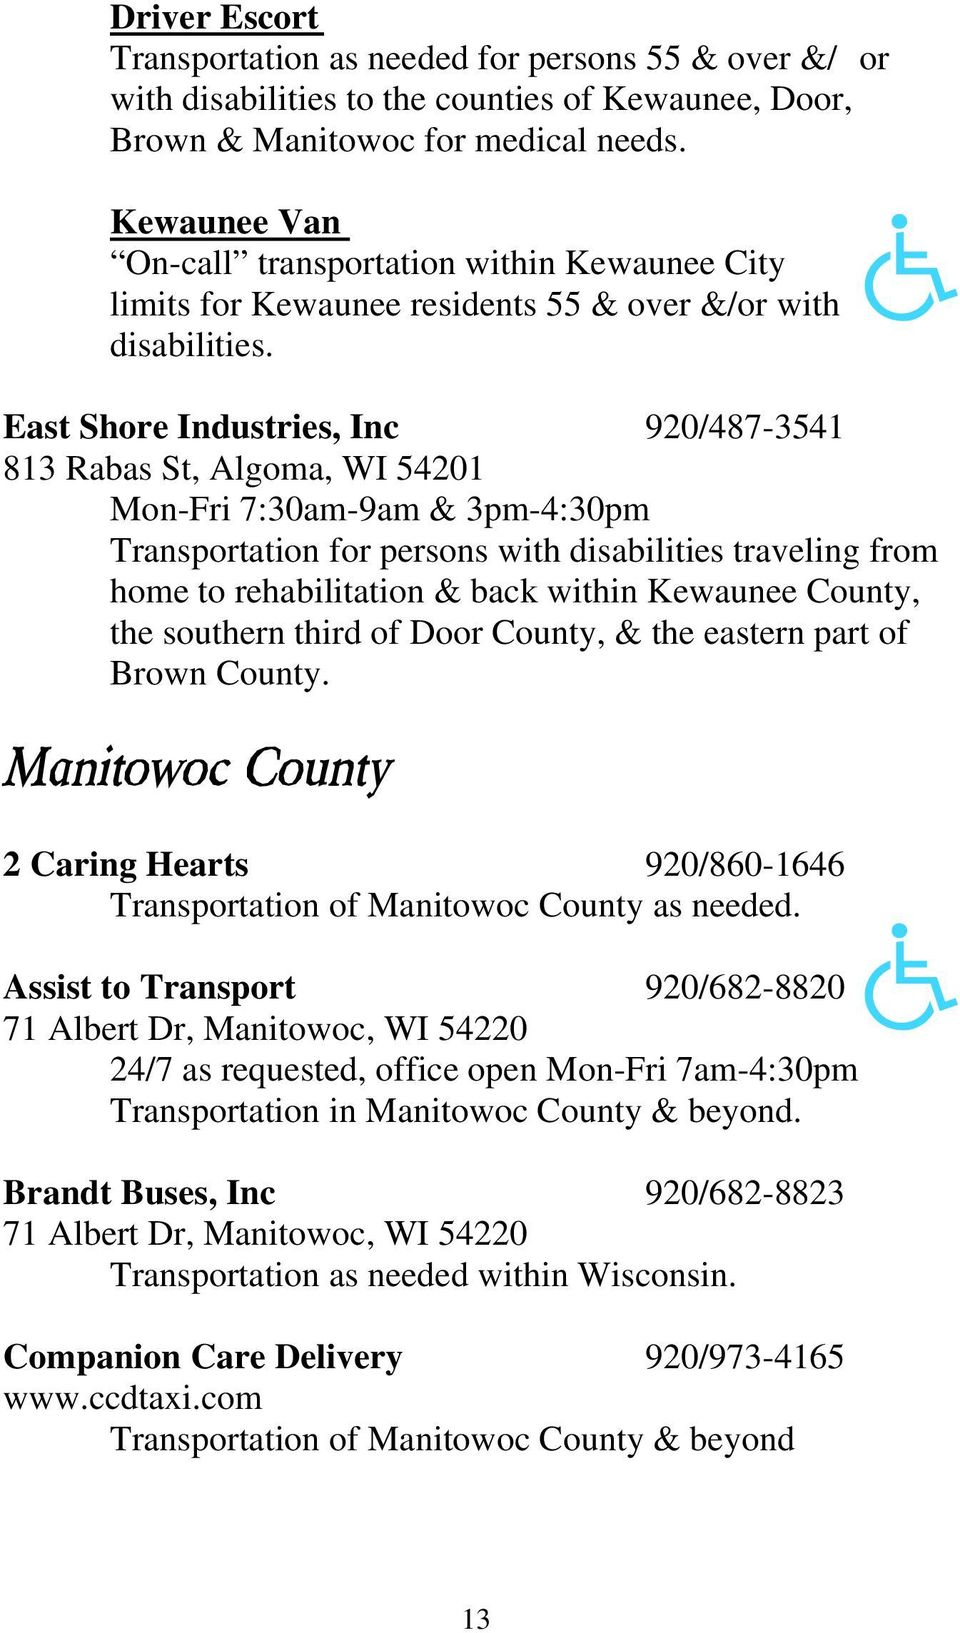 East Shore Industries, Inc 920/487-3541 813 Rabas St, Algoma, WI 54201 Mon-Fri 7:30am-9am & 3pm-4:30pm Transportation for persons with disabilities traveling from home to rehabilitation & back within